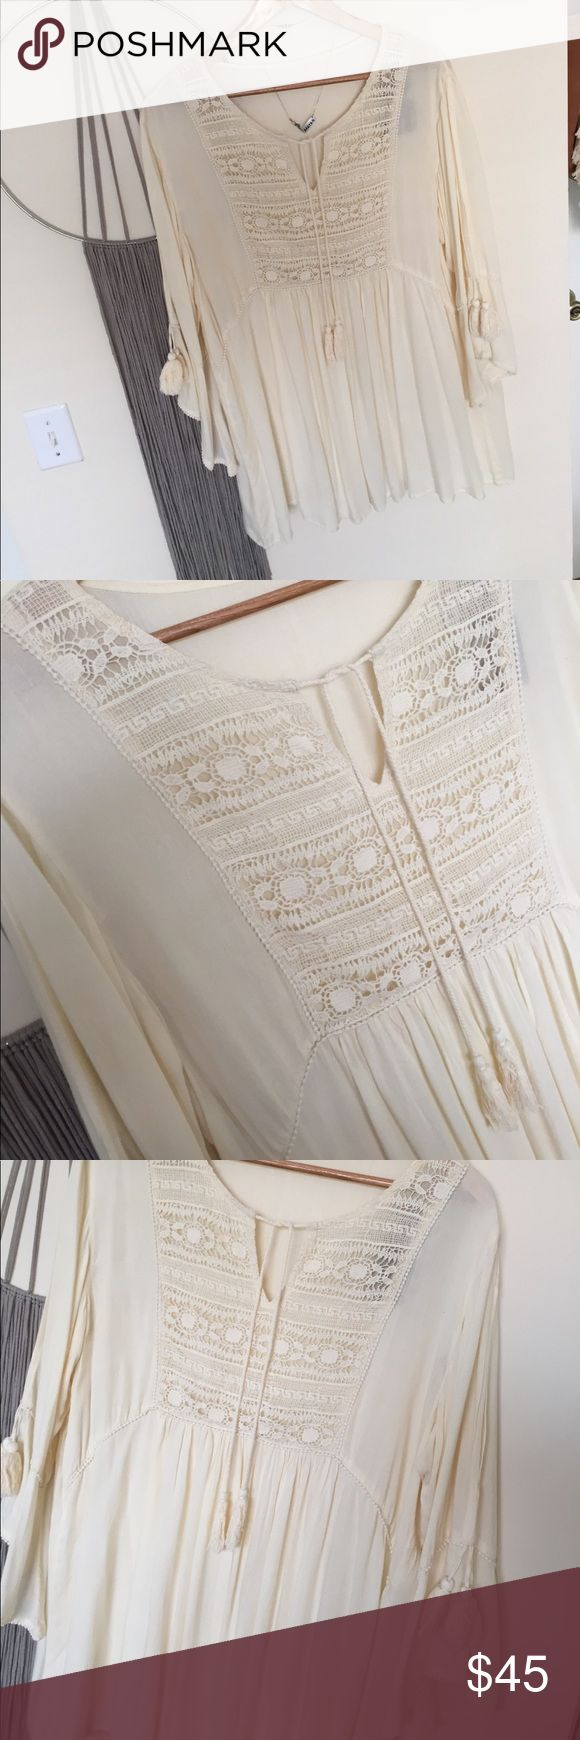 Sacred Threads Boho Tunic Top ✌🏽🌈 NWT Sacred Threads Boho/Festival Tunic Top. Cream color oversized style w/crochet & fringe detailing. Flare flutter sleeves w/upper arm openings. Can be a mini dress on someone petite 5'2 under or as a really lovely top for taller height. Brand new, never worn. Would be adorable dressed up or just as casual wear, very versatile. N🚫 Trades. ☀️🏄🏽♀️🌴 ps keep in mind juniors sizing runs smaller. Sacred Threads Tops Tunics